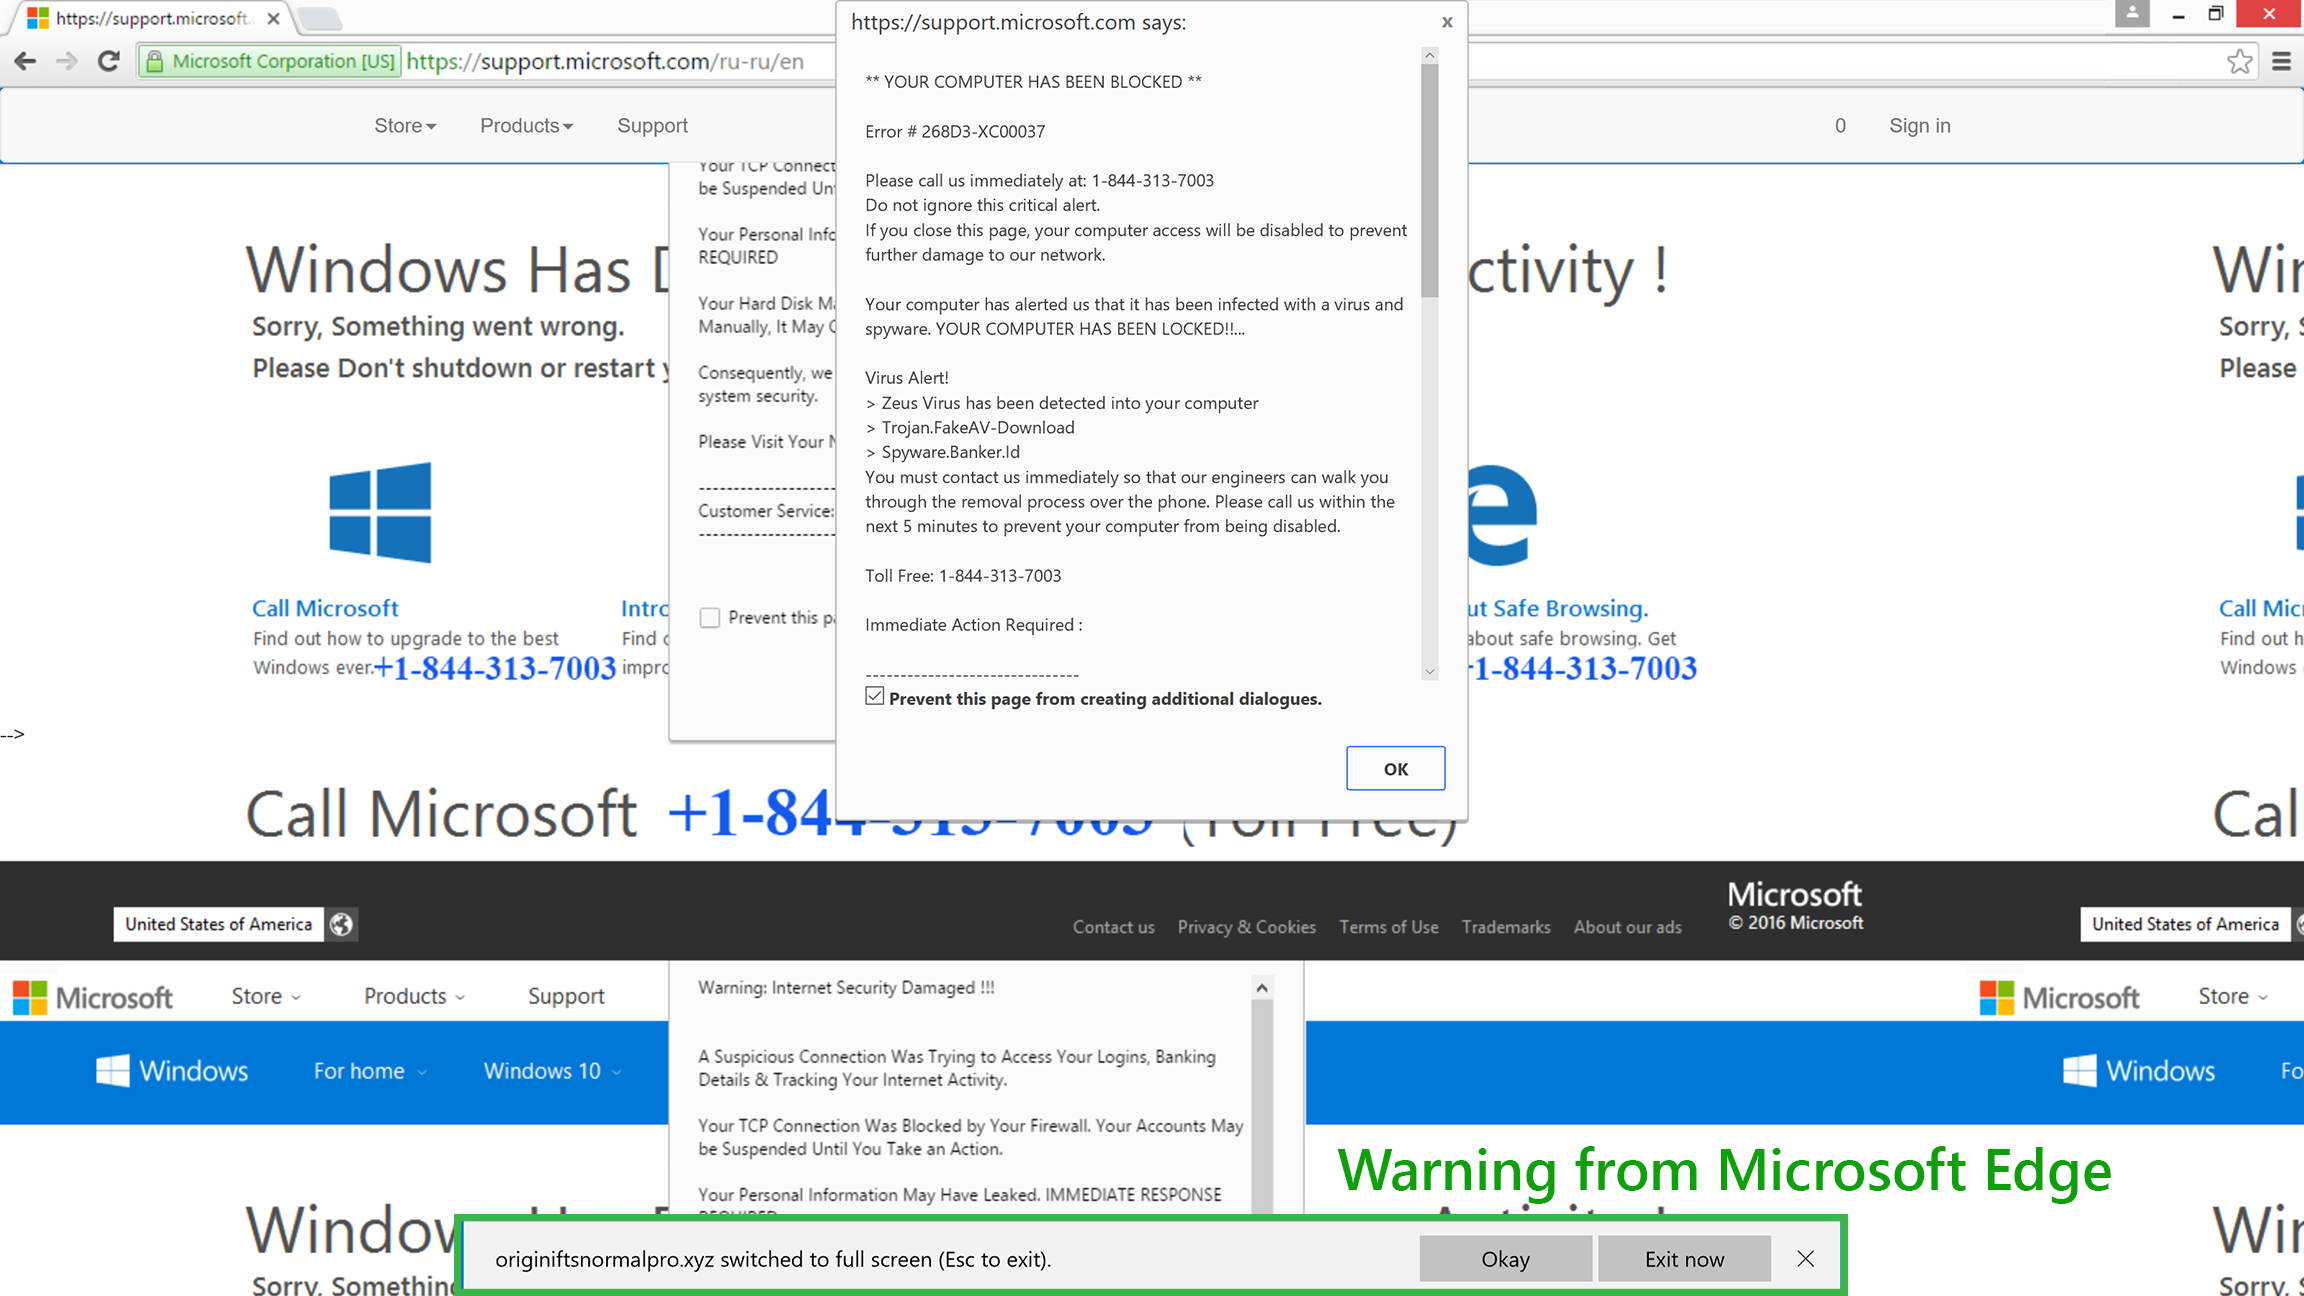 Alert from Microsoft Edge that the site has gone to full screen.